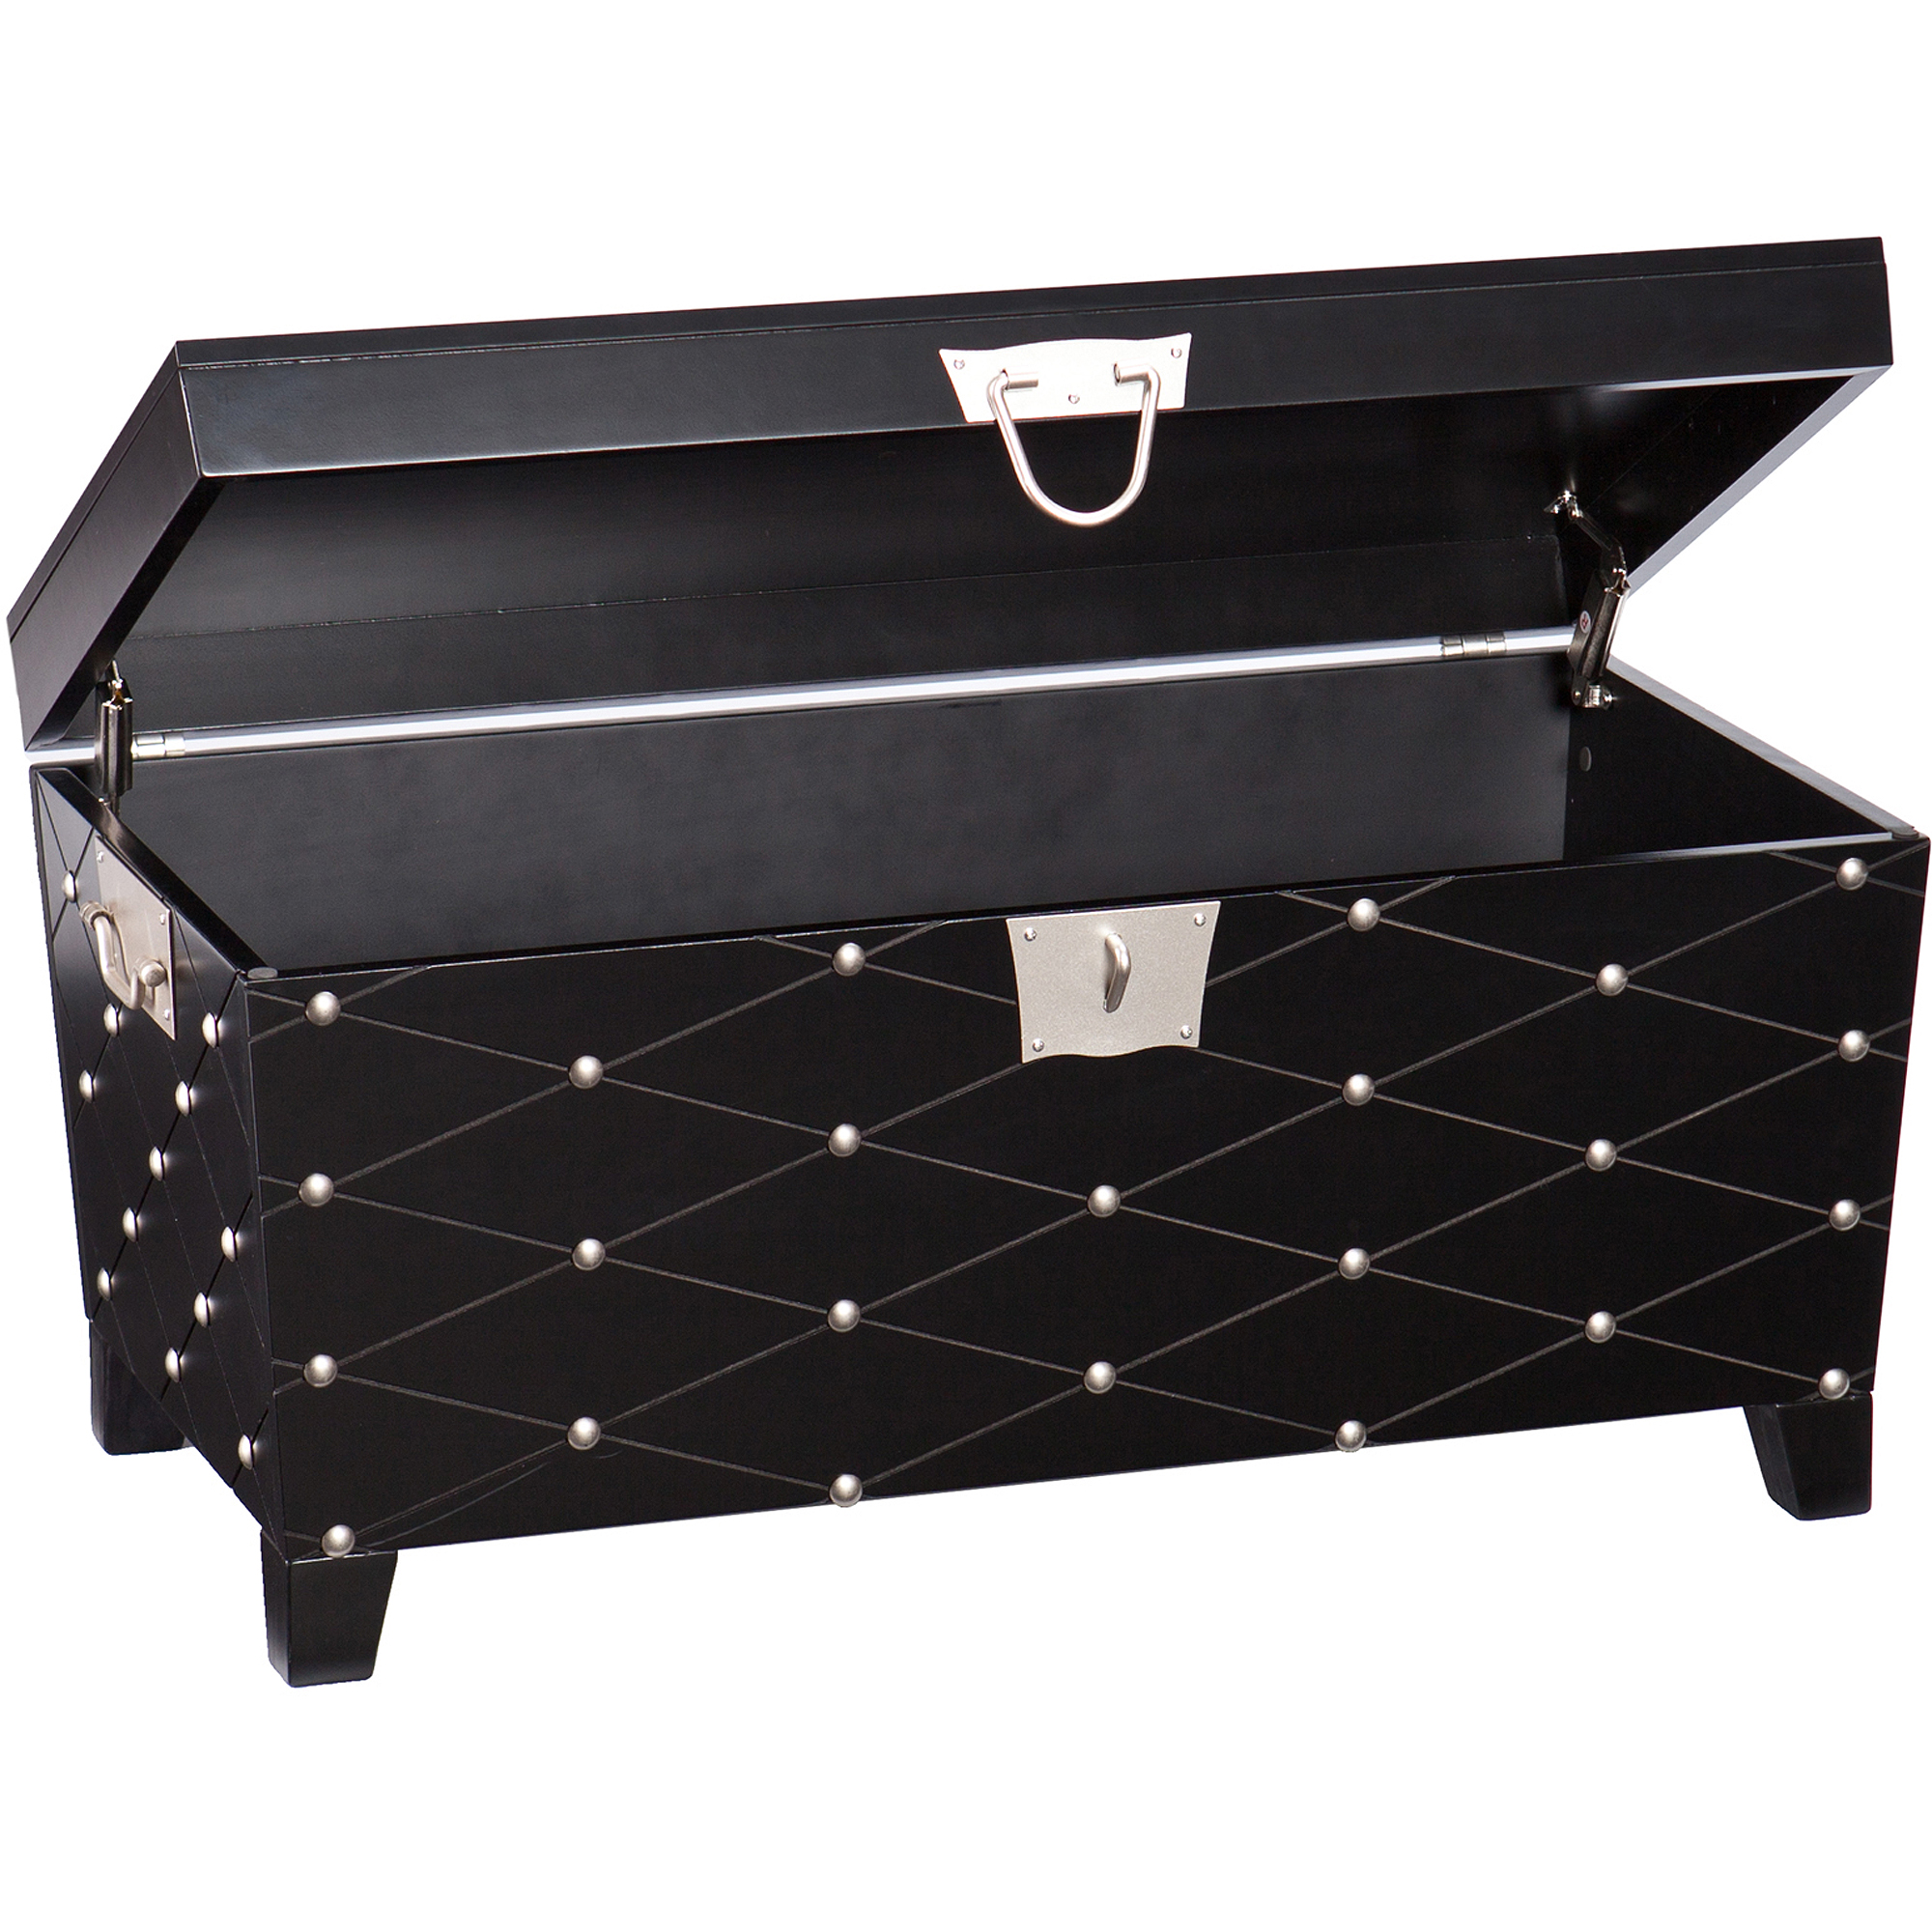 Longwood nailhead cocktail table trunk blacksatin silver longwood nailhead cocktail table trunk blacksatin silver walmart geotapseo Images